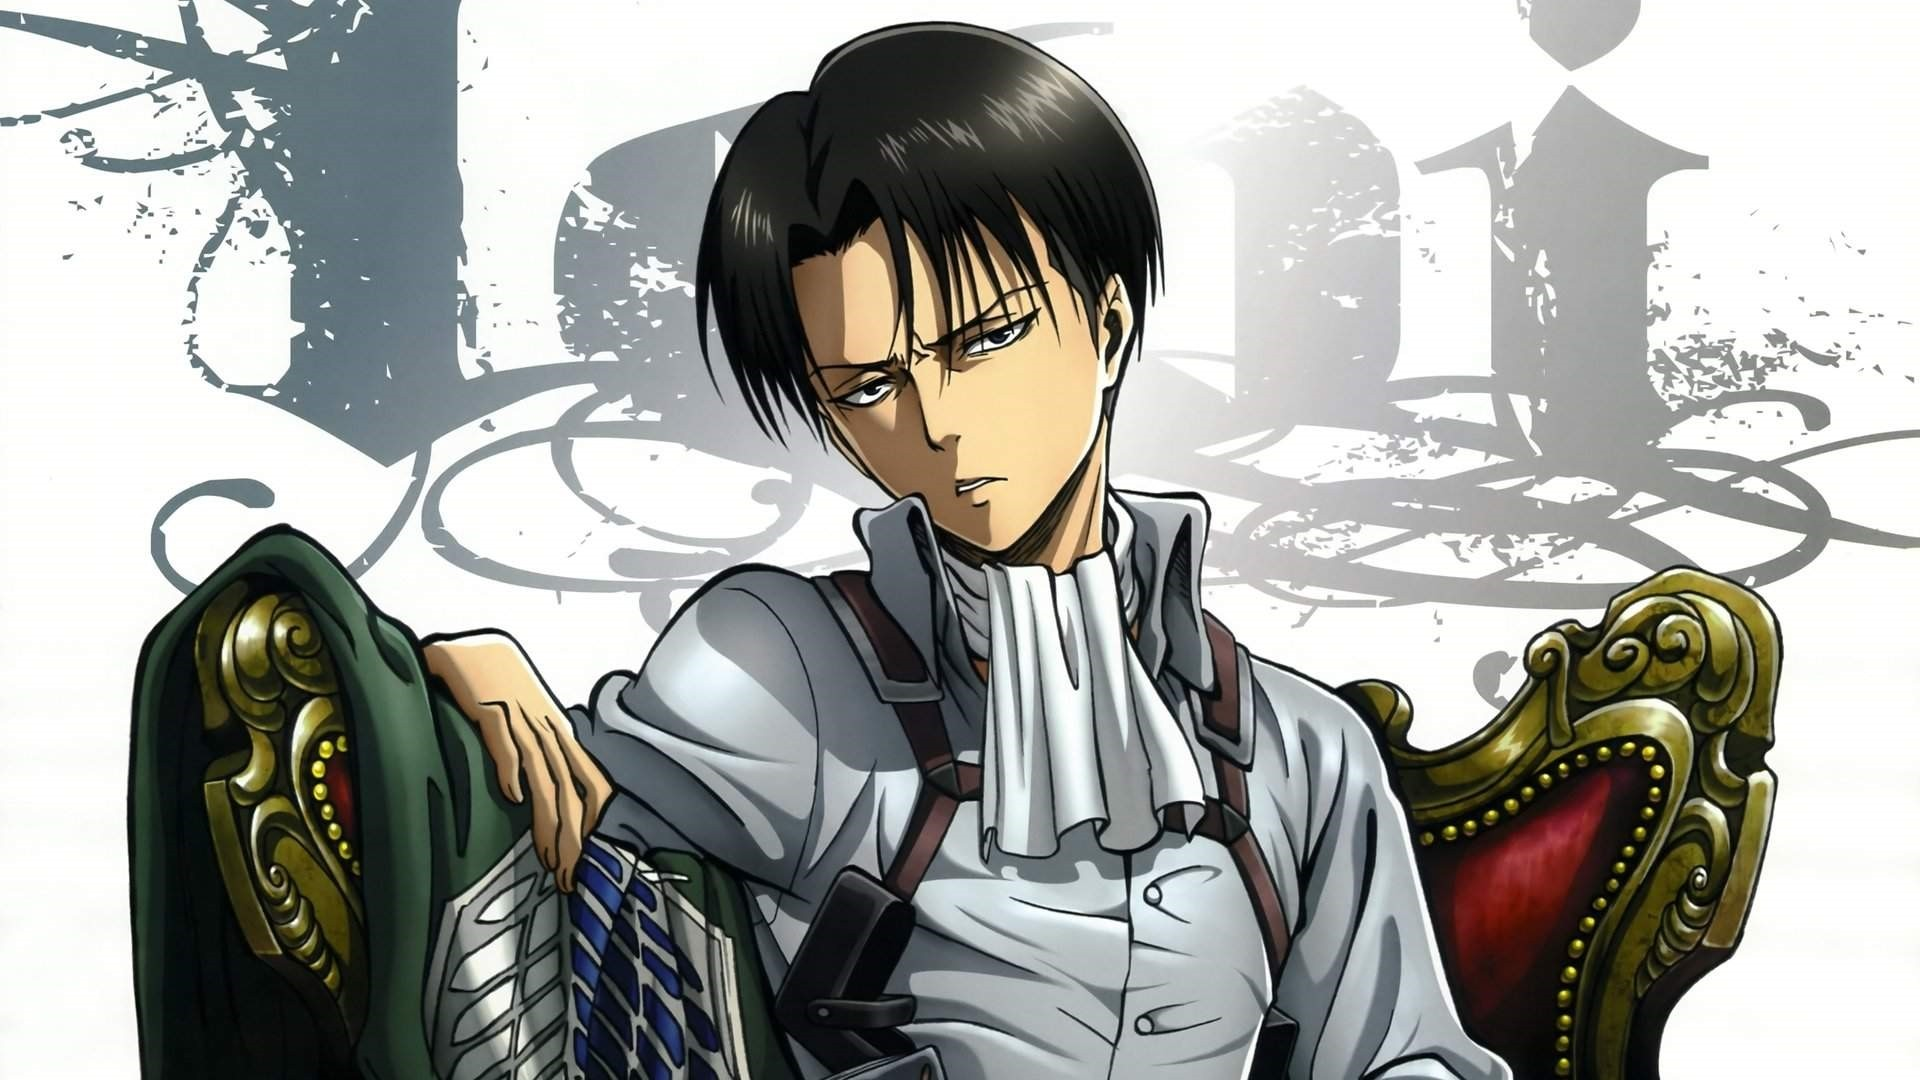 Levi Ackerman Wallpaper and Background